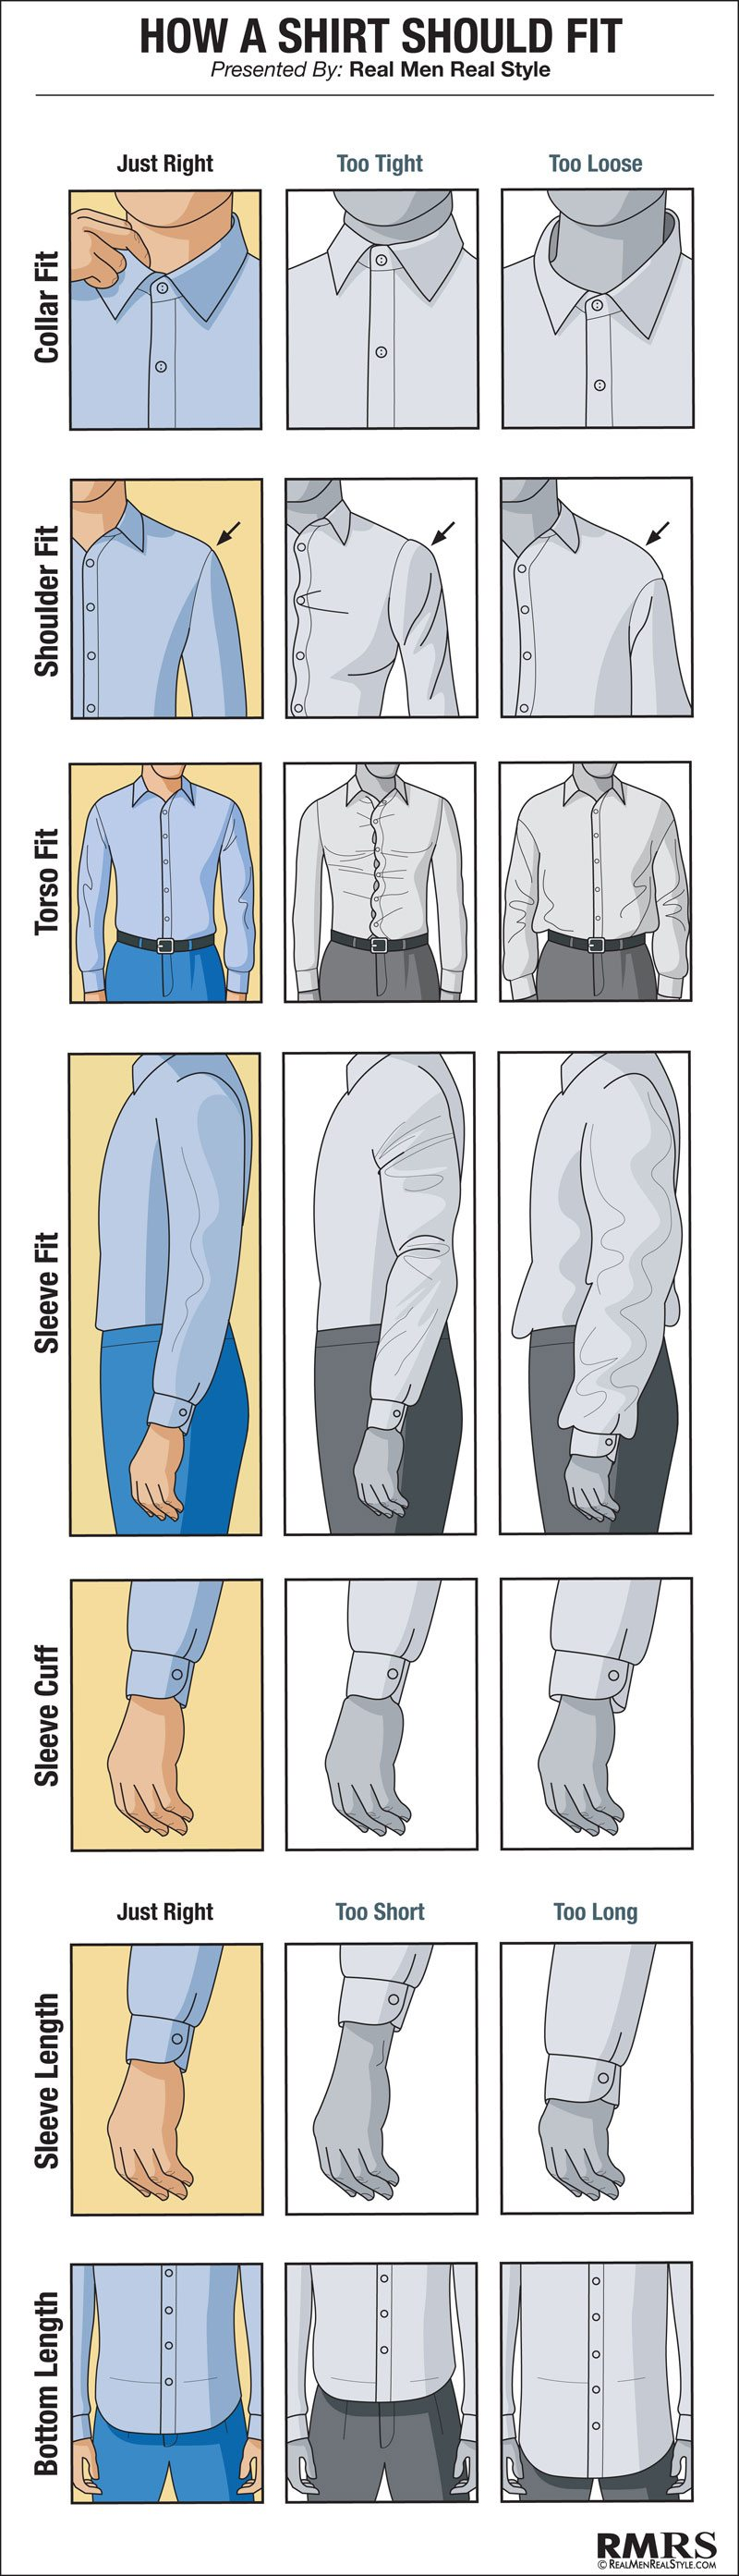 How-A-Shirt-Should-Fit-Infographic-RMRS-800